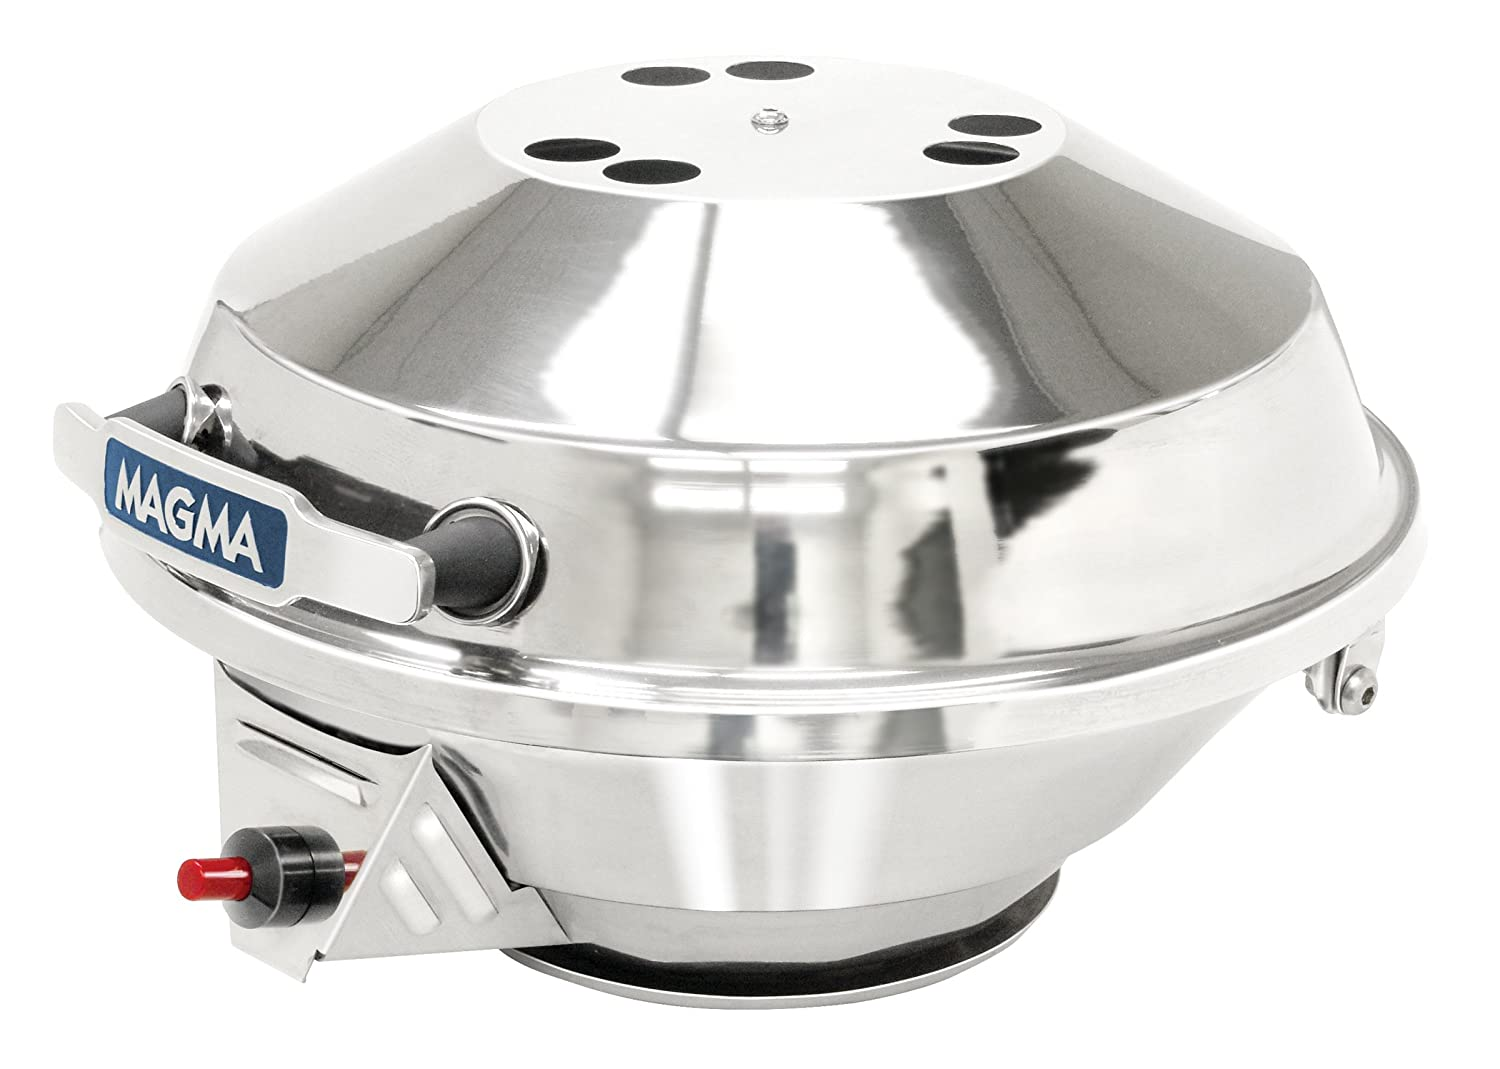 Amazon.com : Osculati MAGMA Polished Stainless Steel Gas Barbecue with Piezo Ignition Stove : Sports & Outdoors